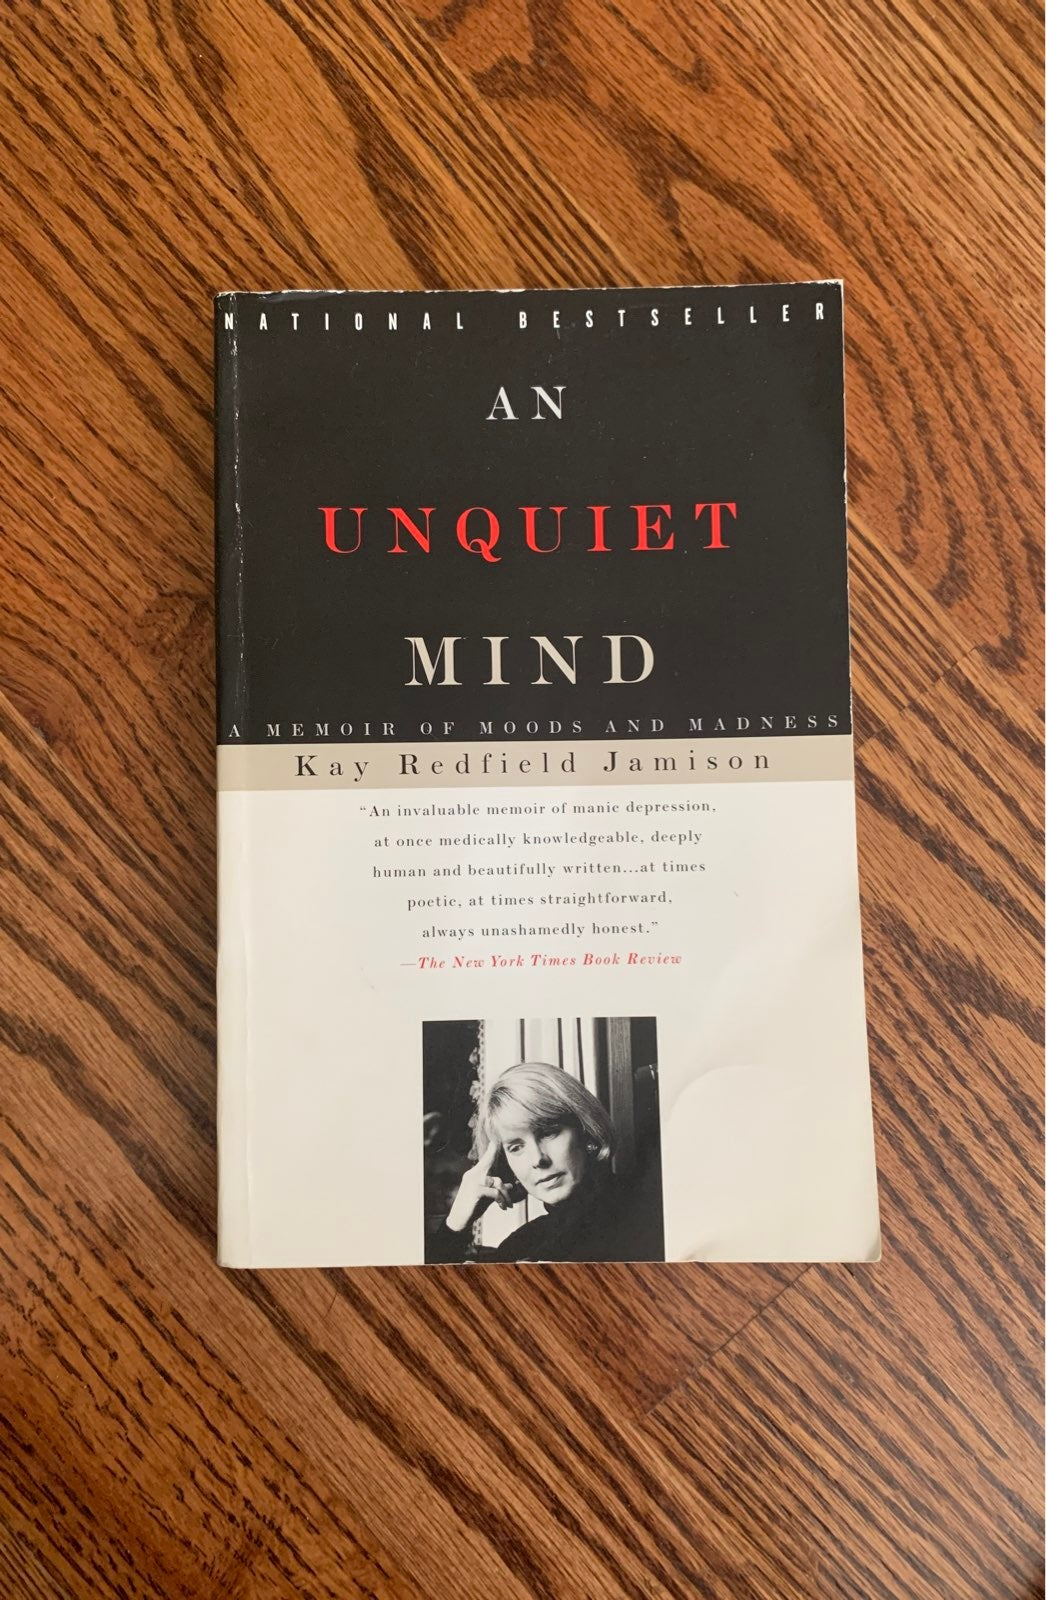 An Unquiet Mind by Kay Redfiled Jamison